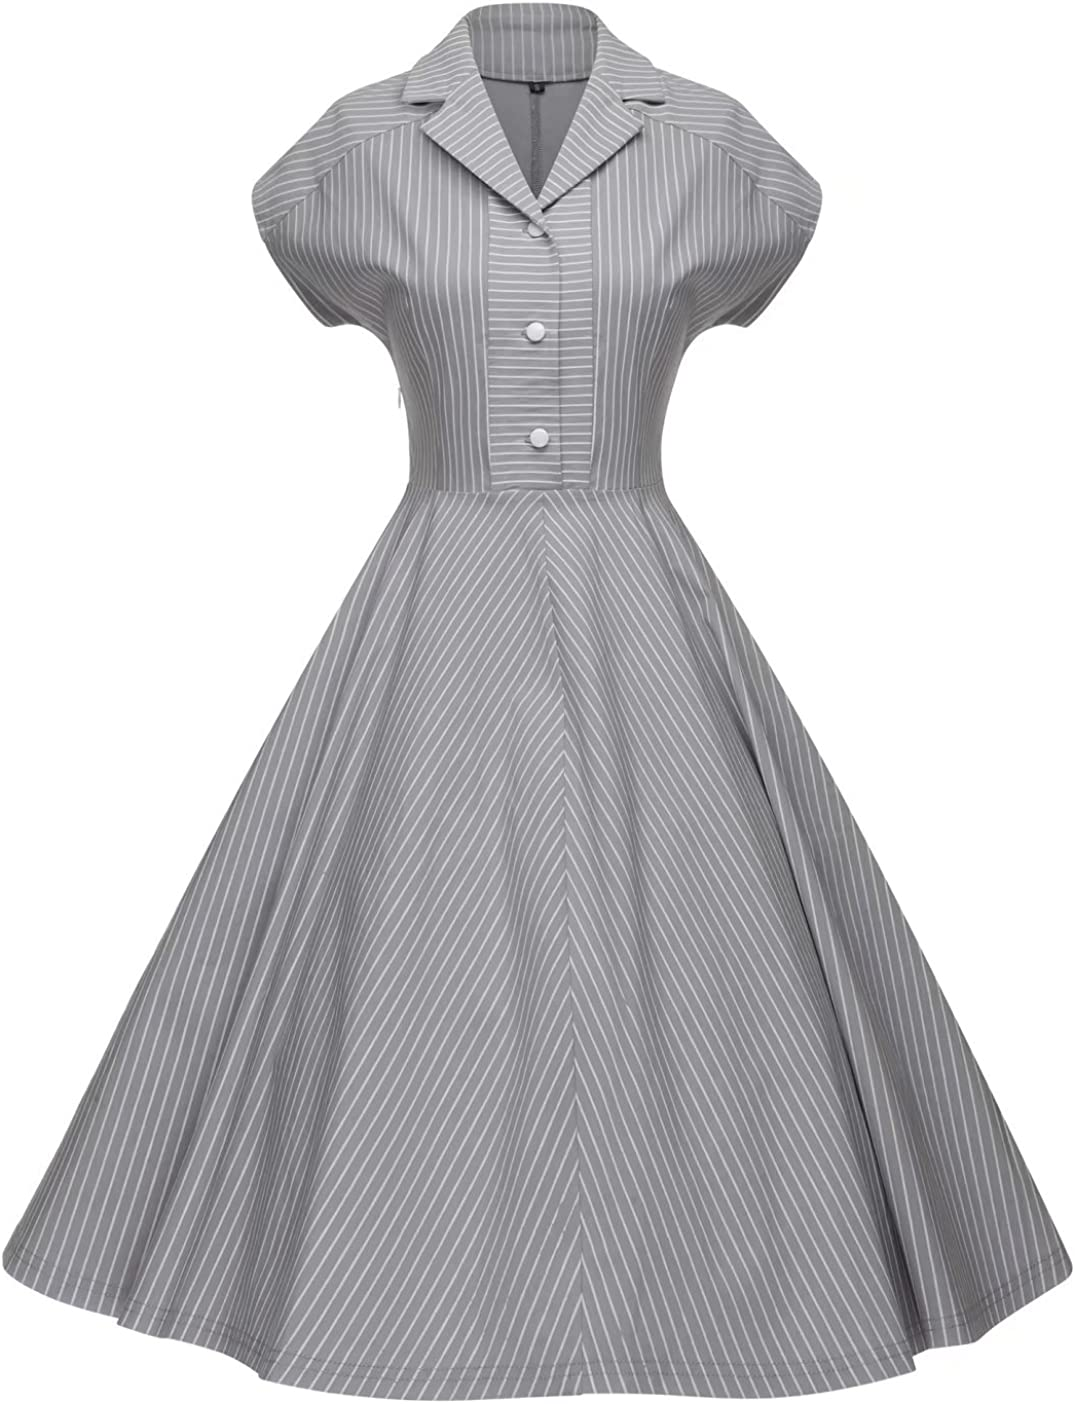 Vintage Shirtwaist Dress History GownTown Womens 1950s Retro Vintage Cocktail Party Swing Dress $34.99 AT vintagedancer.com